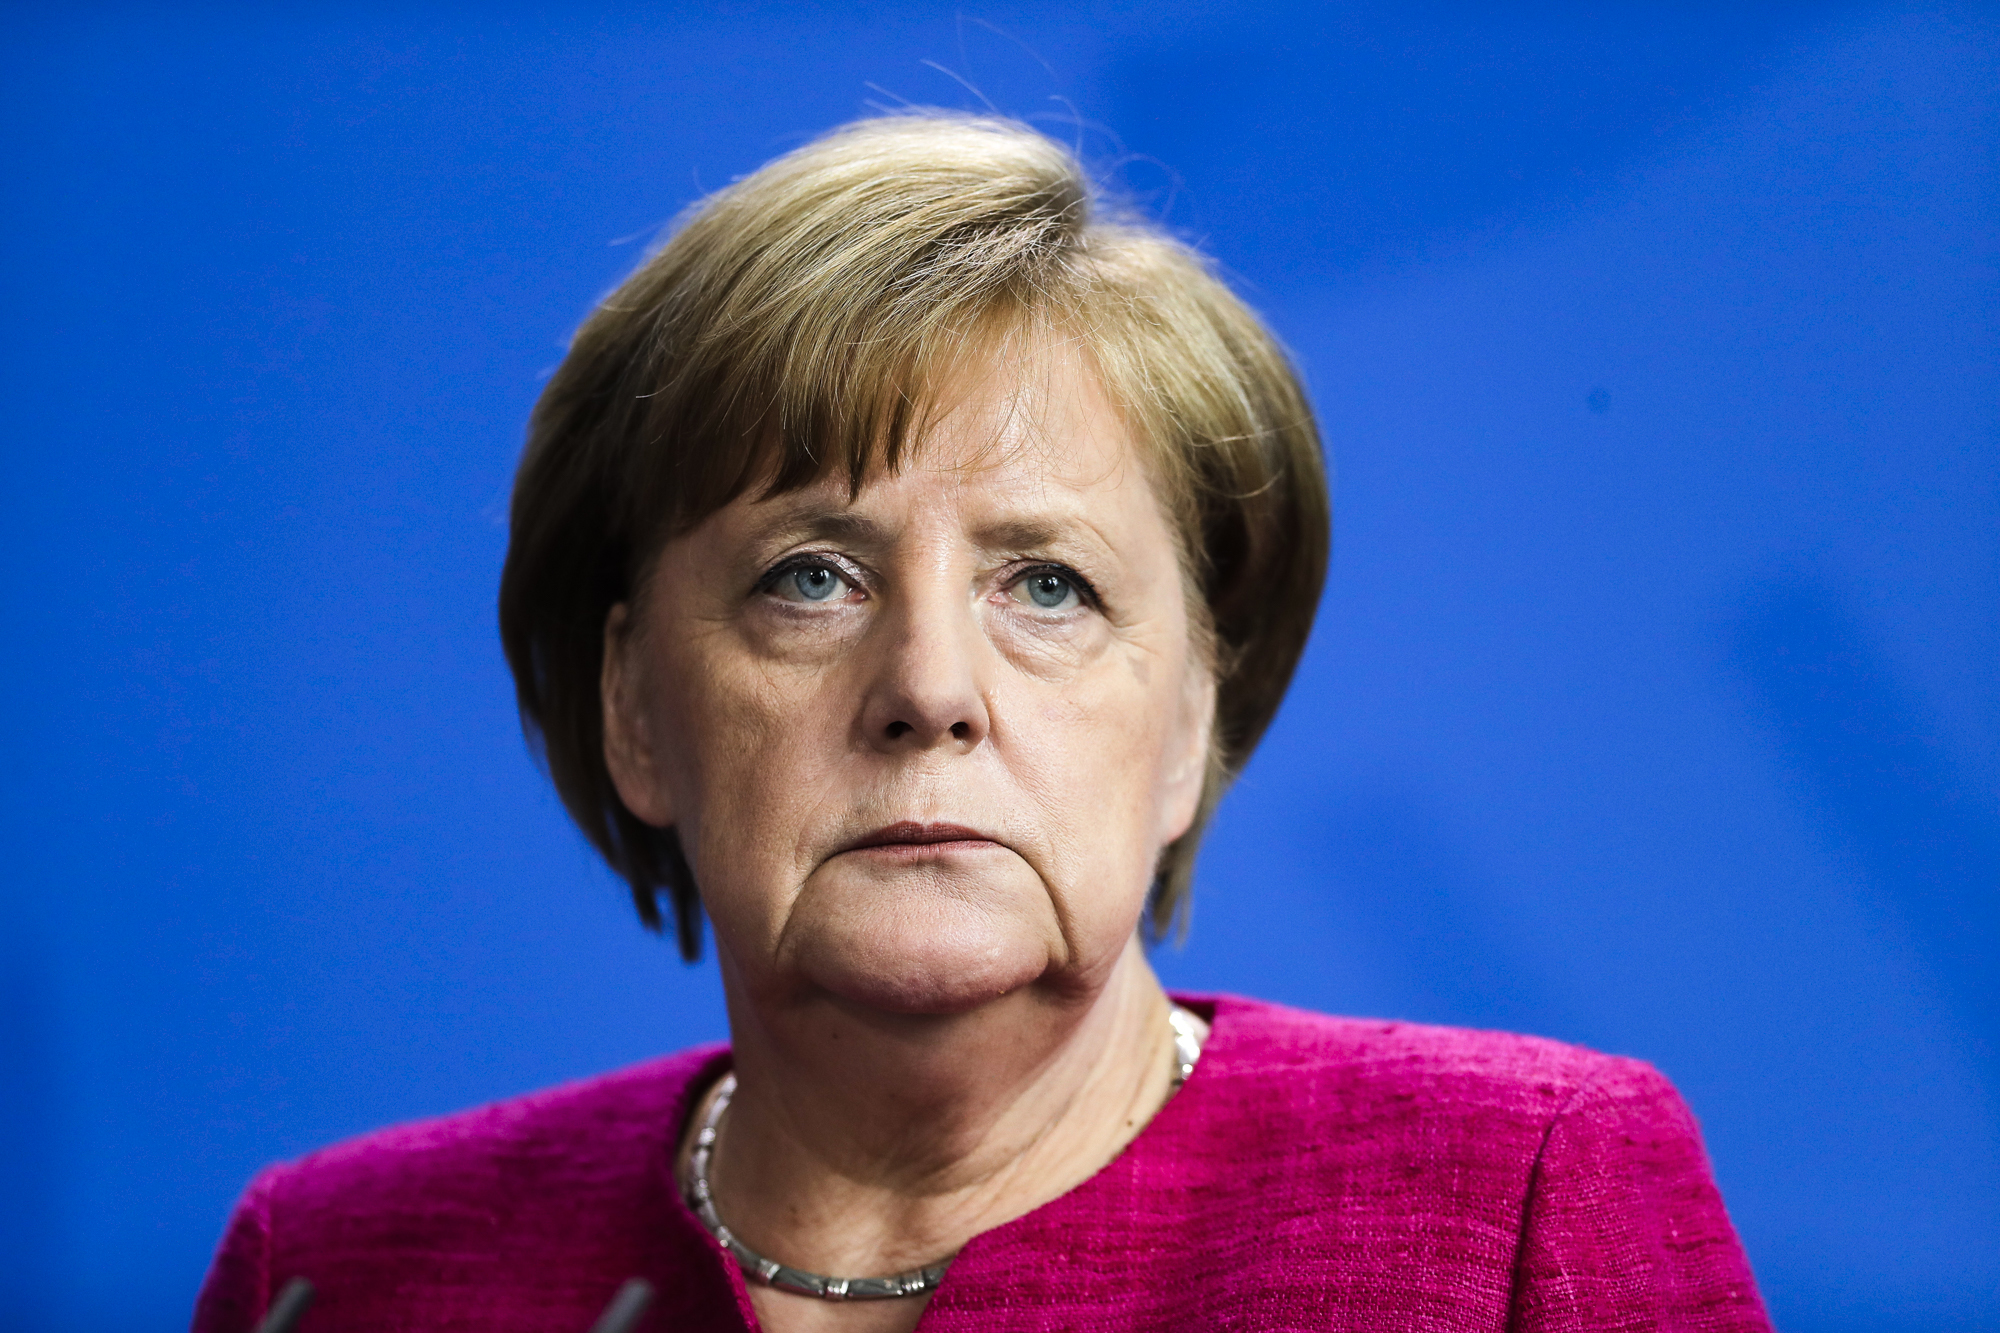 Merkel planning special European Union  summit on migrant crisis